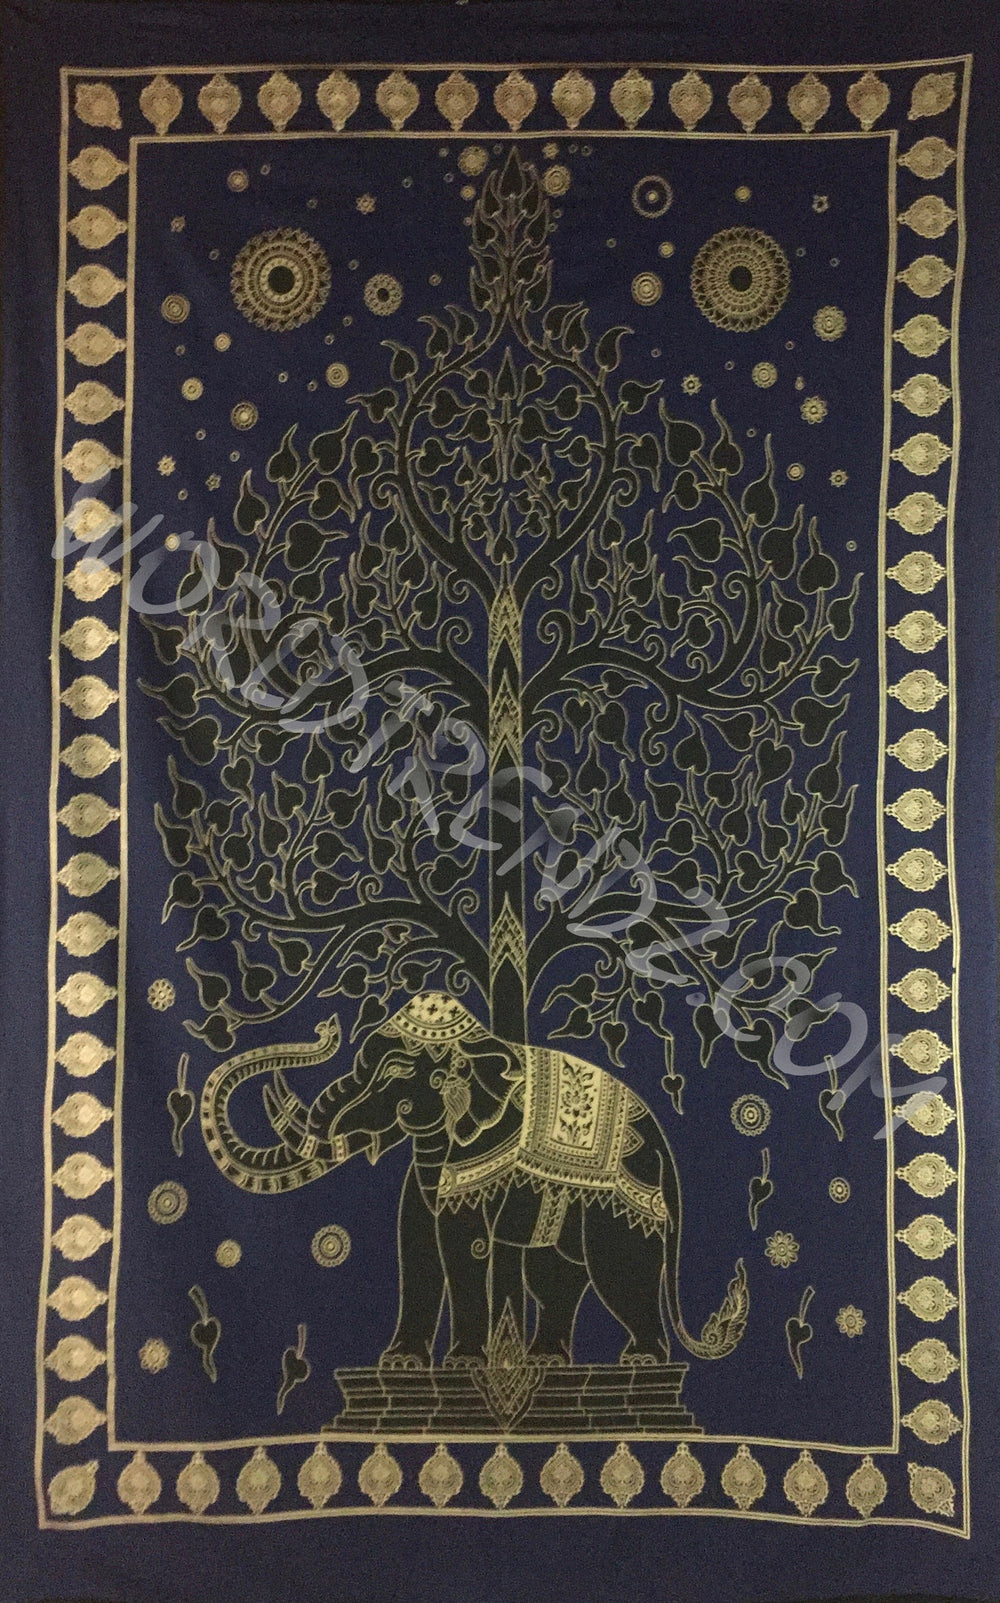 ELEPHANT BODHI TREE TAPESTRY NAVY BLUE GOLD